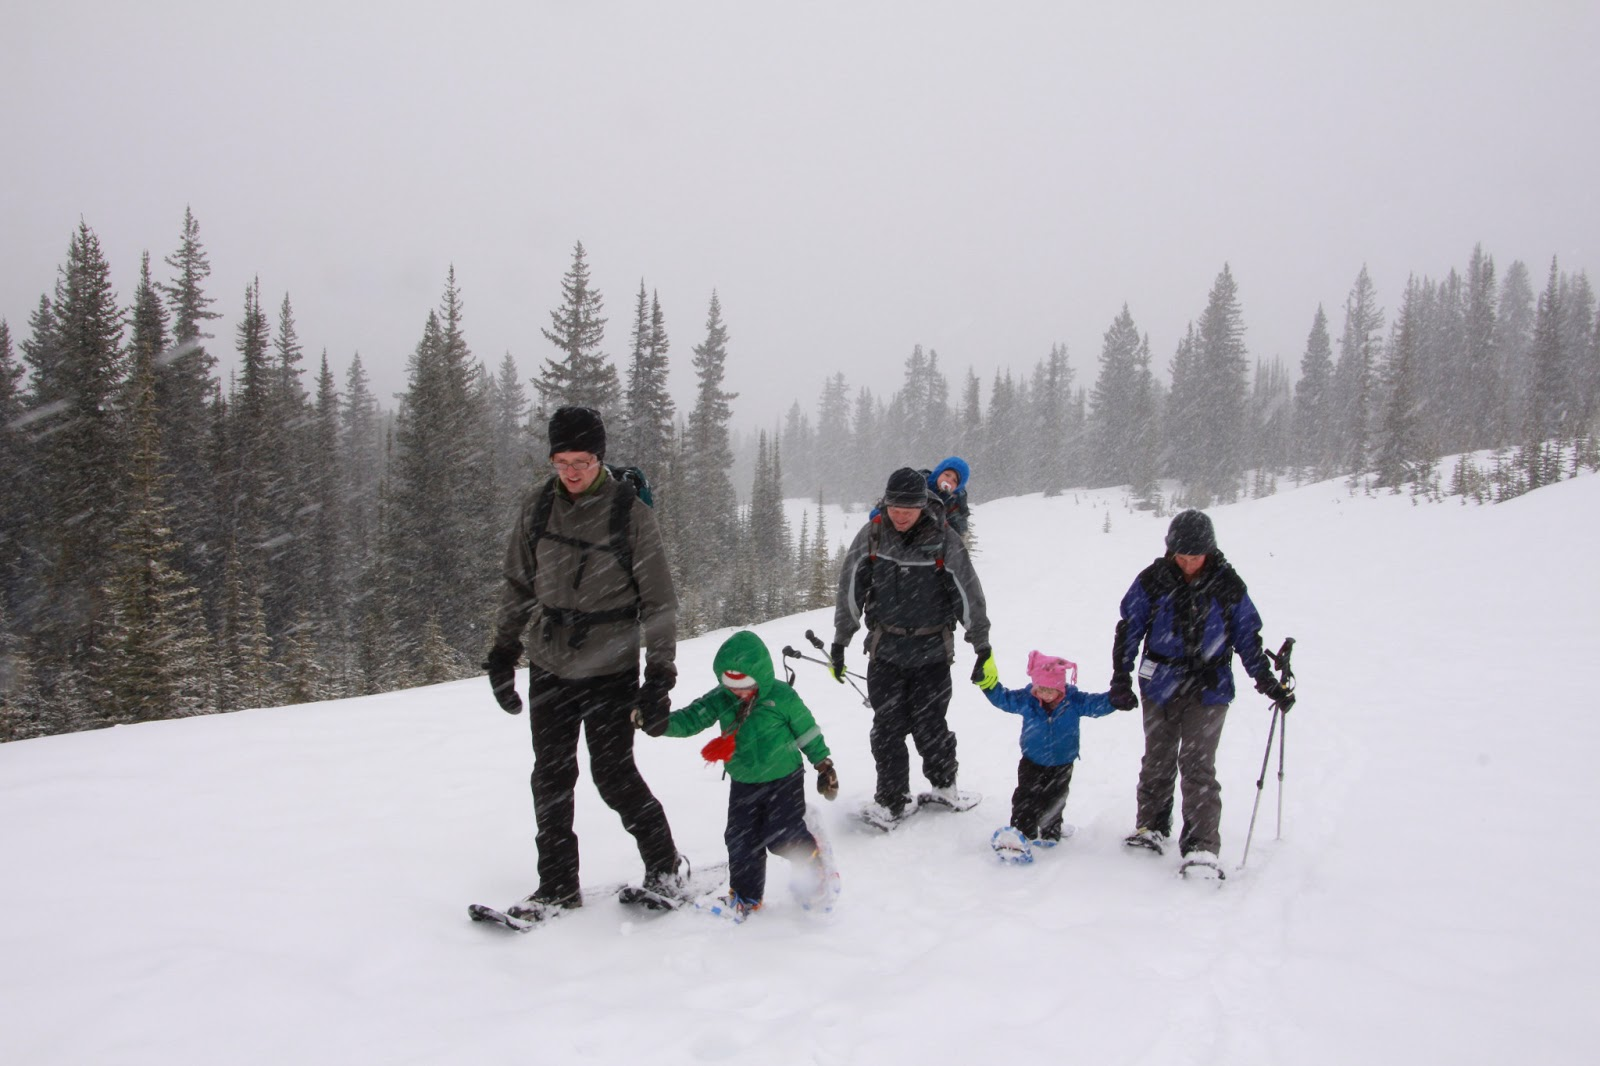 Snowshoeing with the family